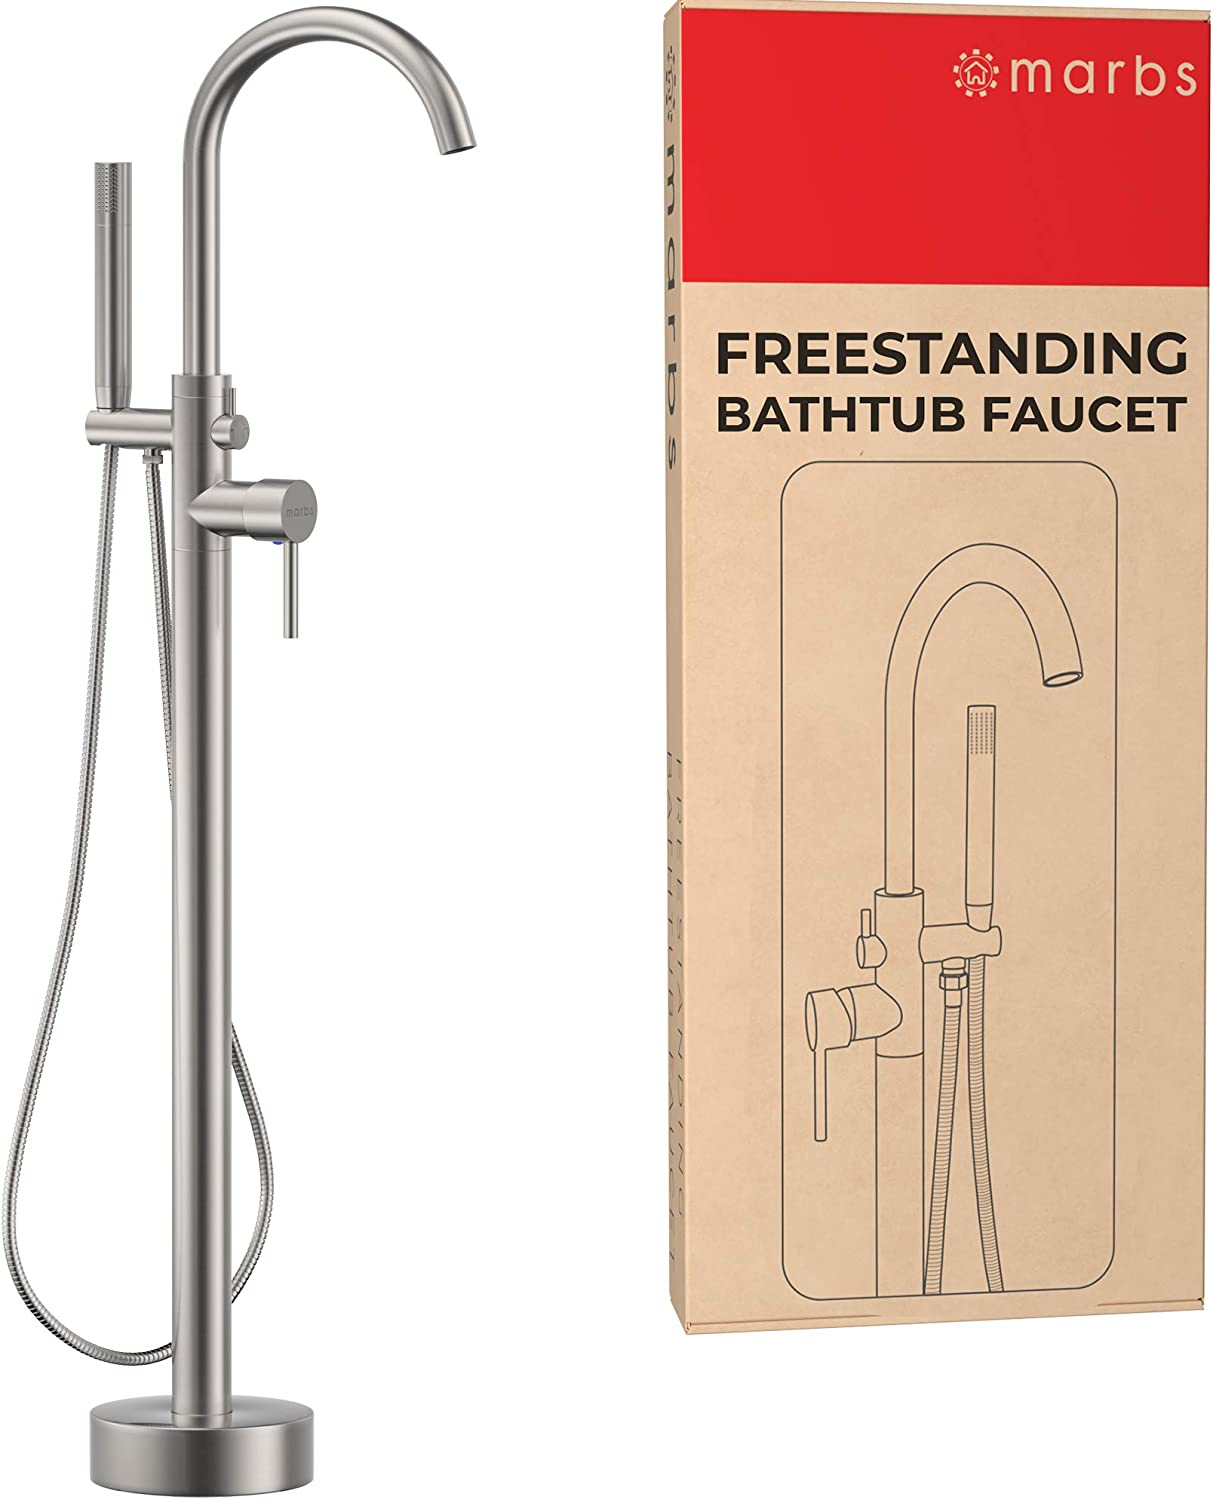 MARBS Freestanding Bathtub Faucet with 360° Spout, Brushed Nickel Freestanding Tub Filler, Brass Bath Tub Faucet with Hand Shower, High 6GPM Flow Rate Bathtub Fillers & Sturdy Mounting Bracket